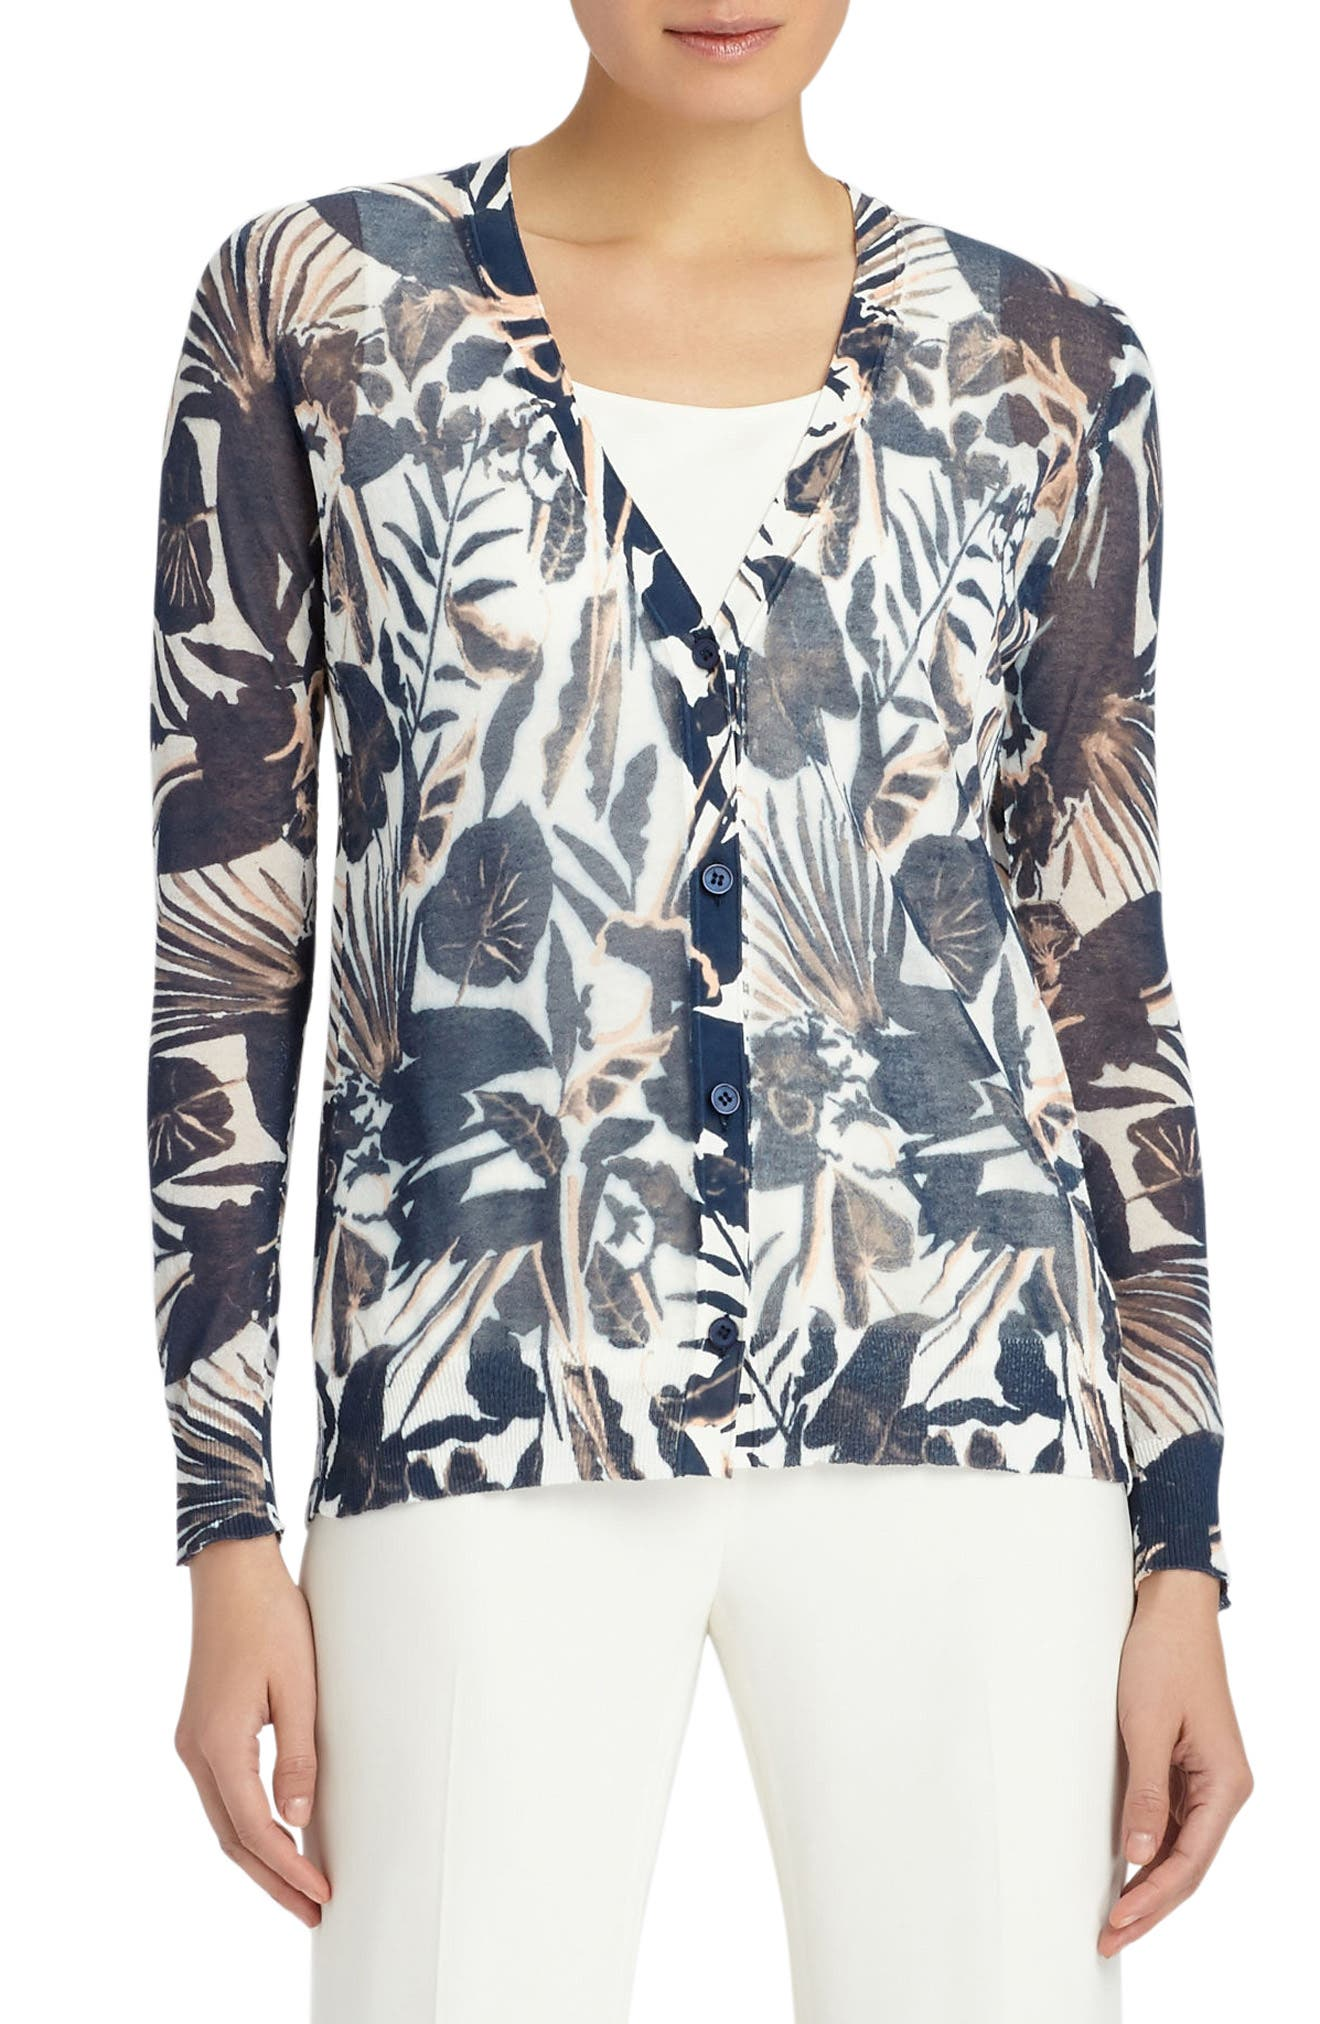 Lafayette 148 New York Chantilly Print Cotton Blend Cardigan